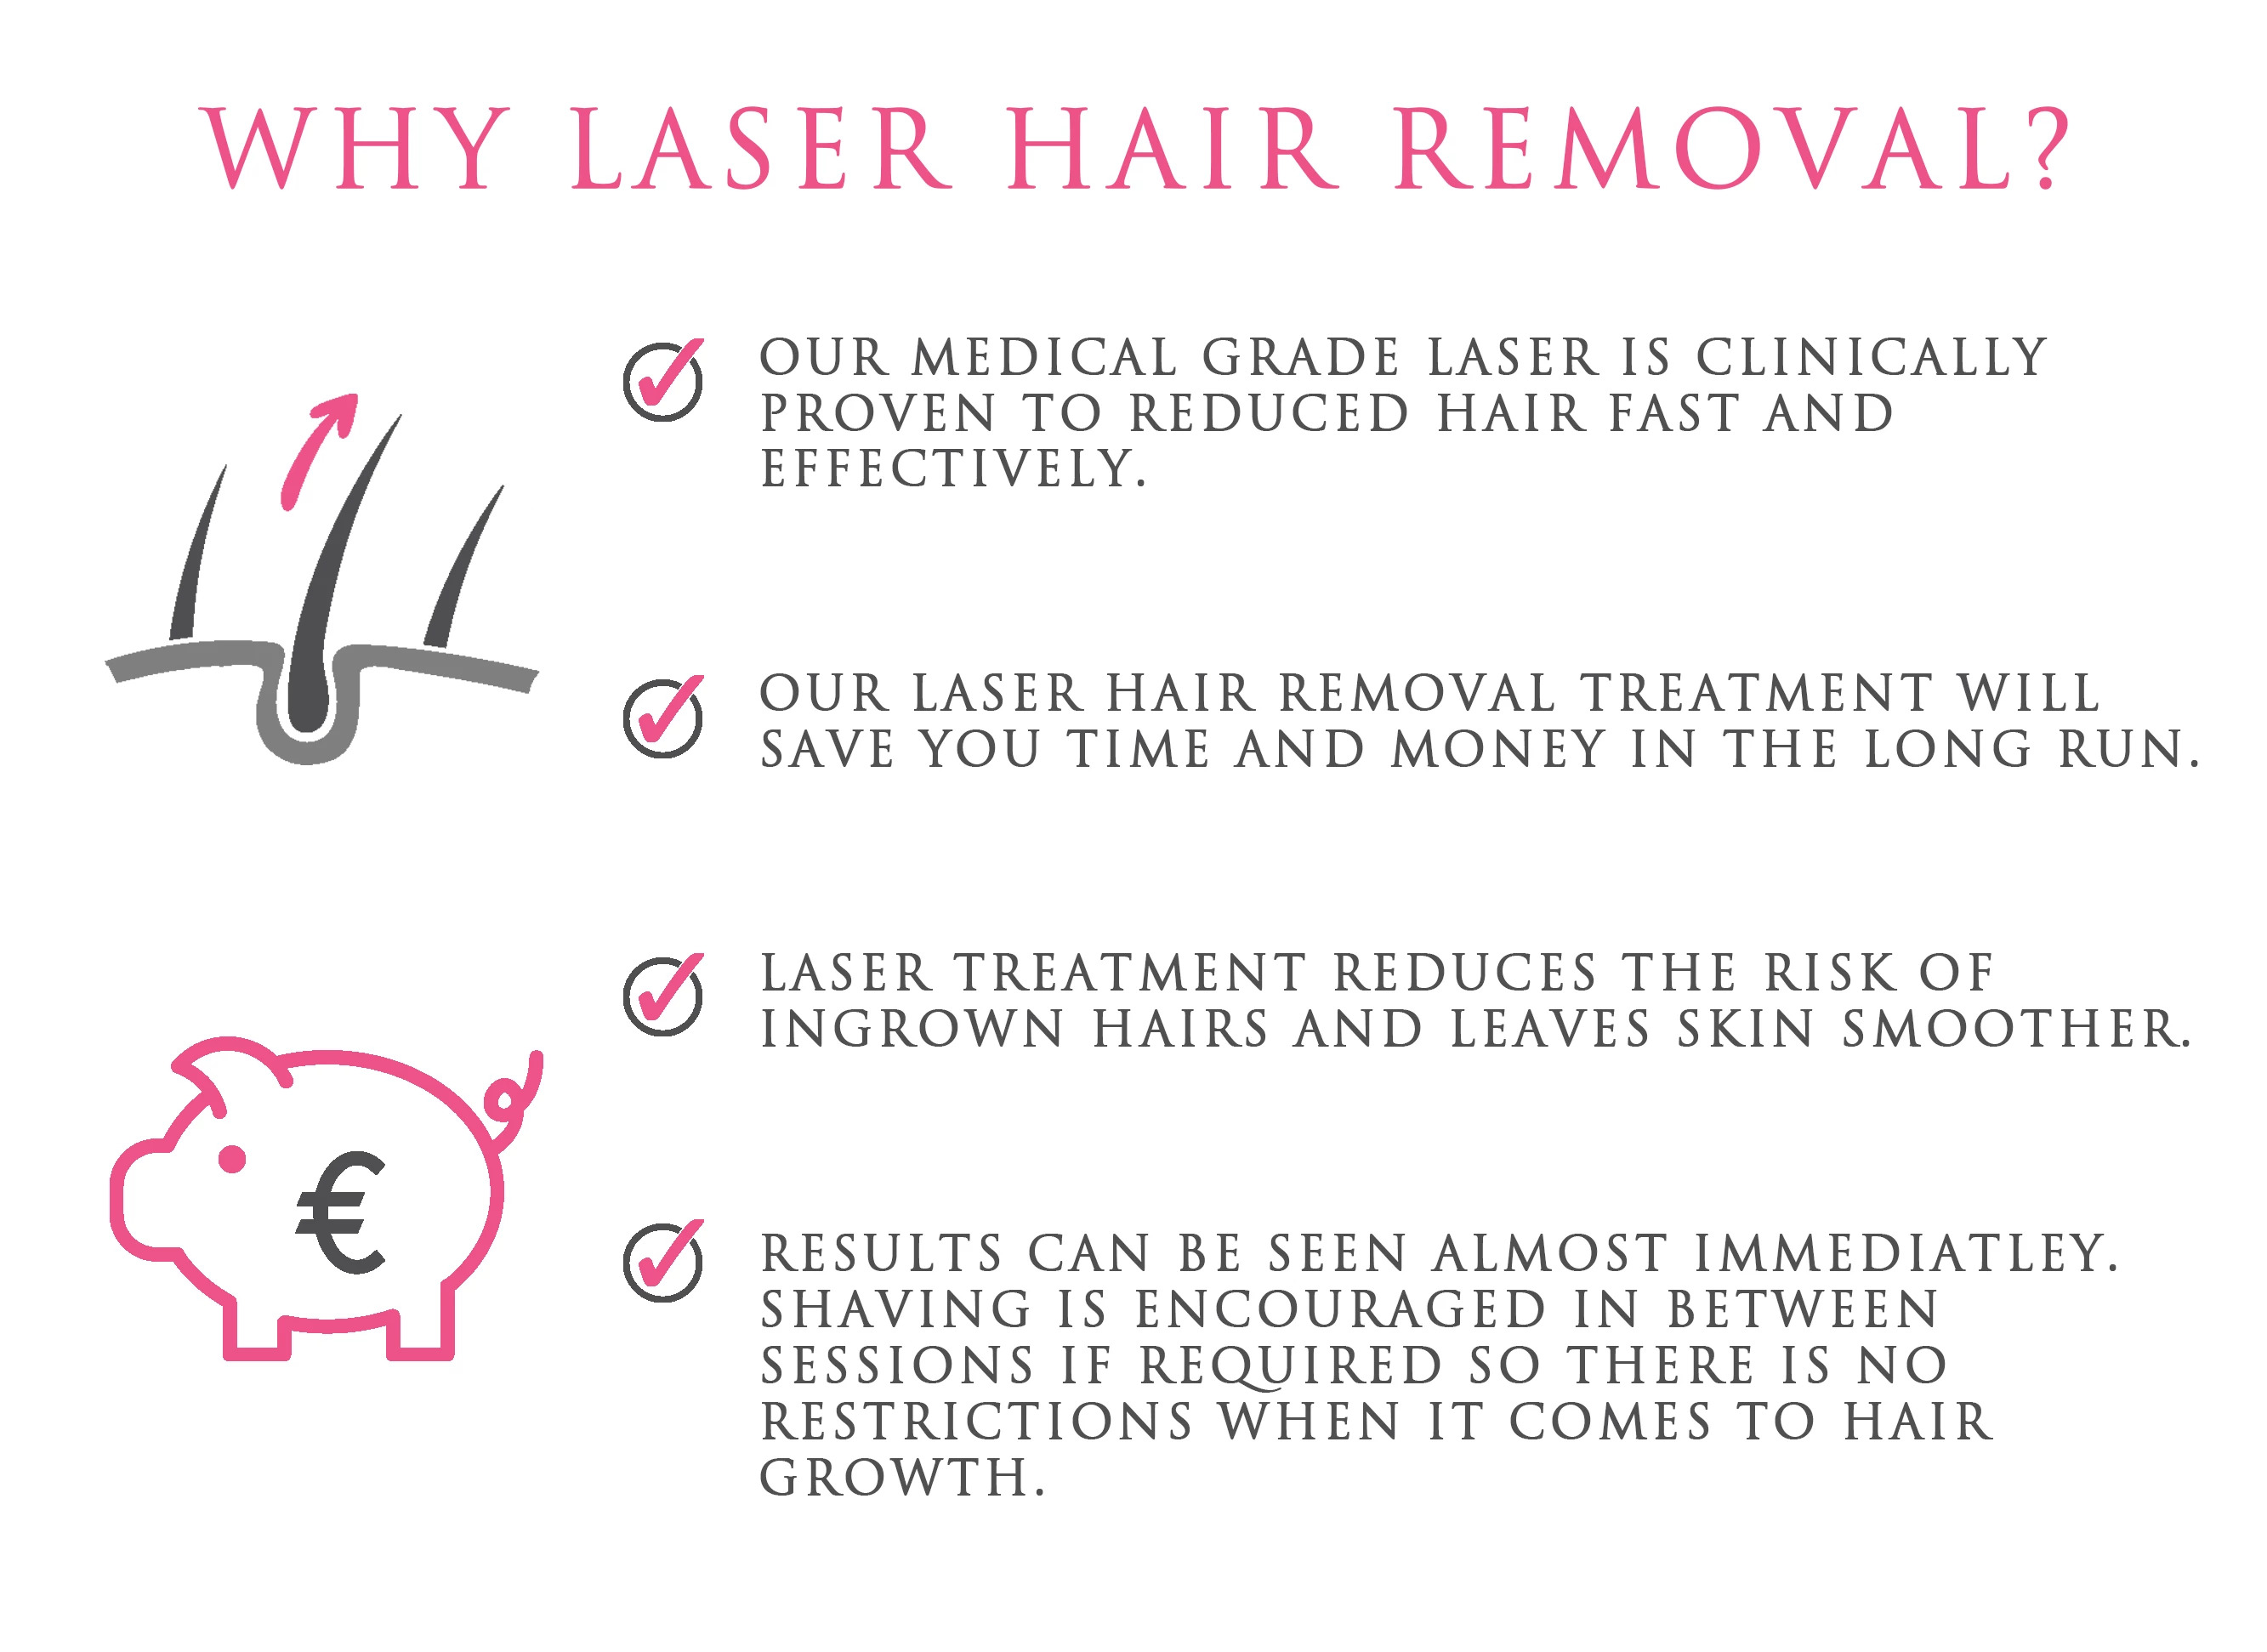 Why Laser Hair Removal